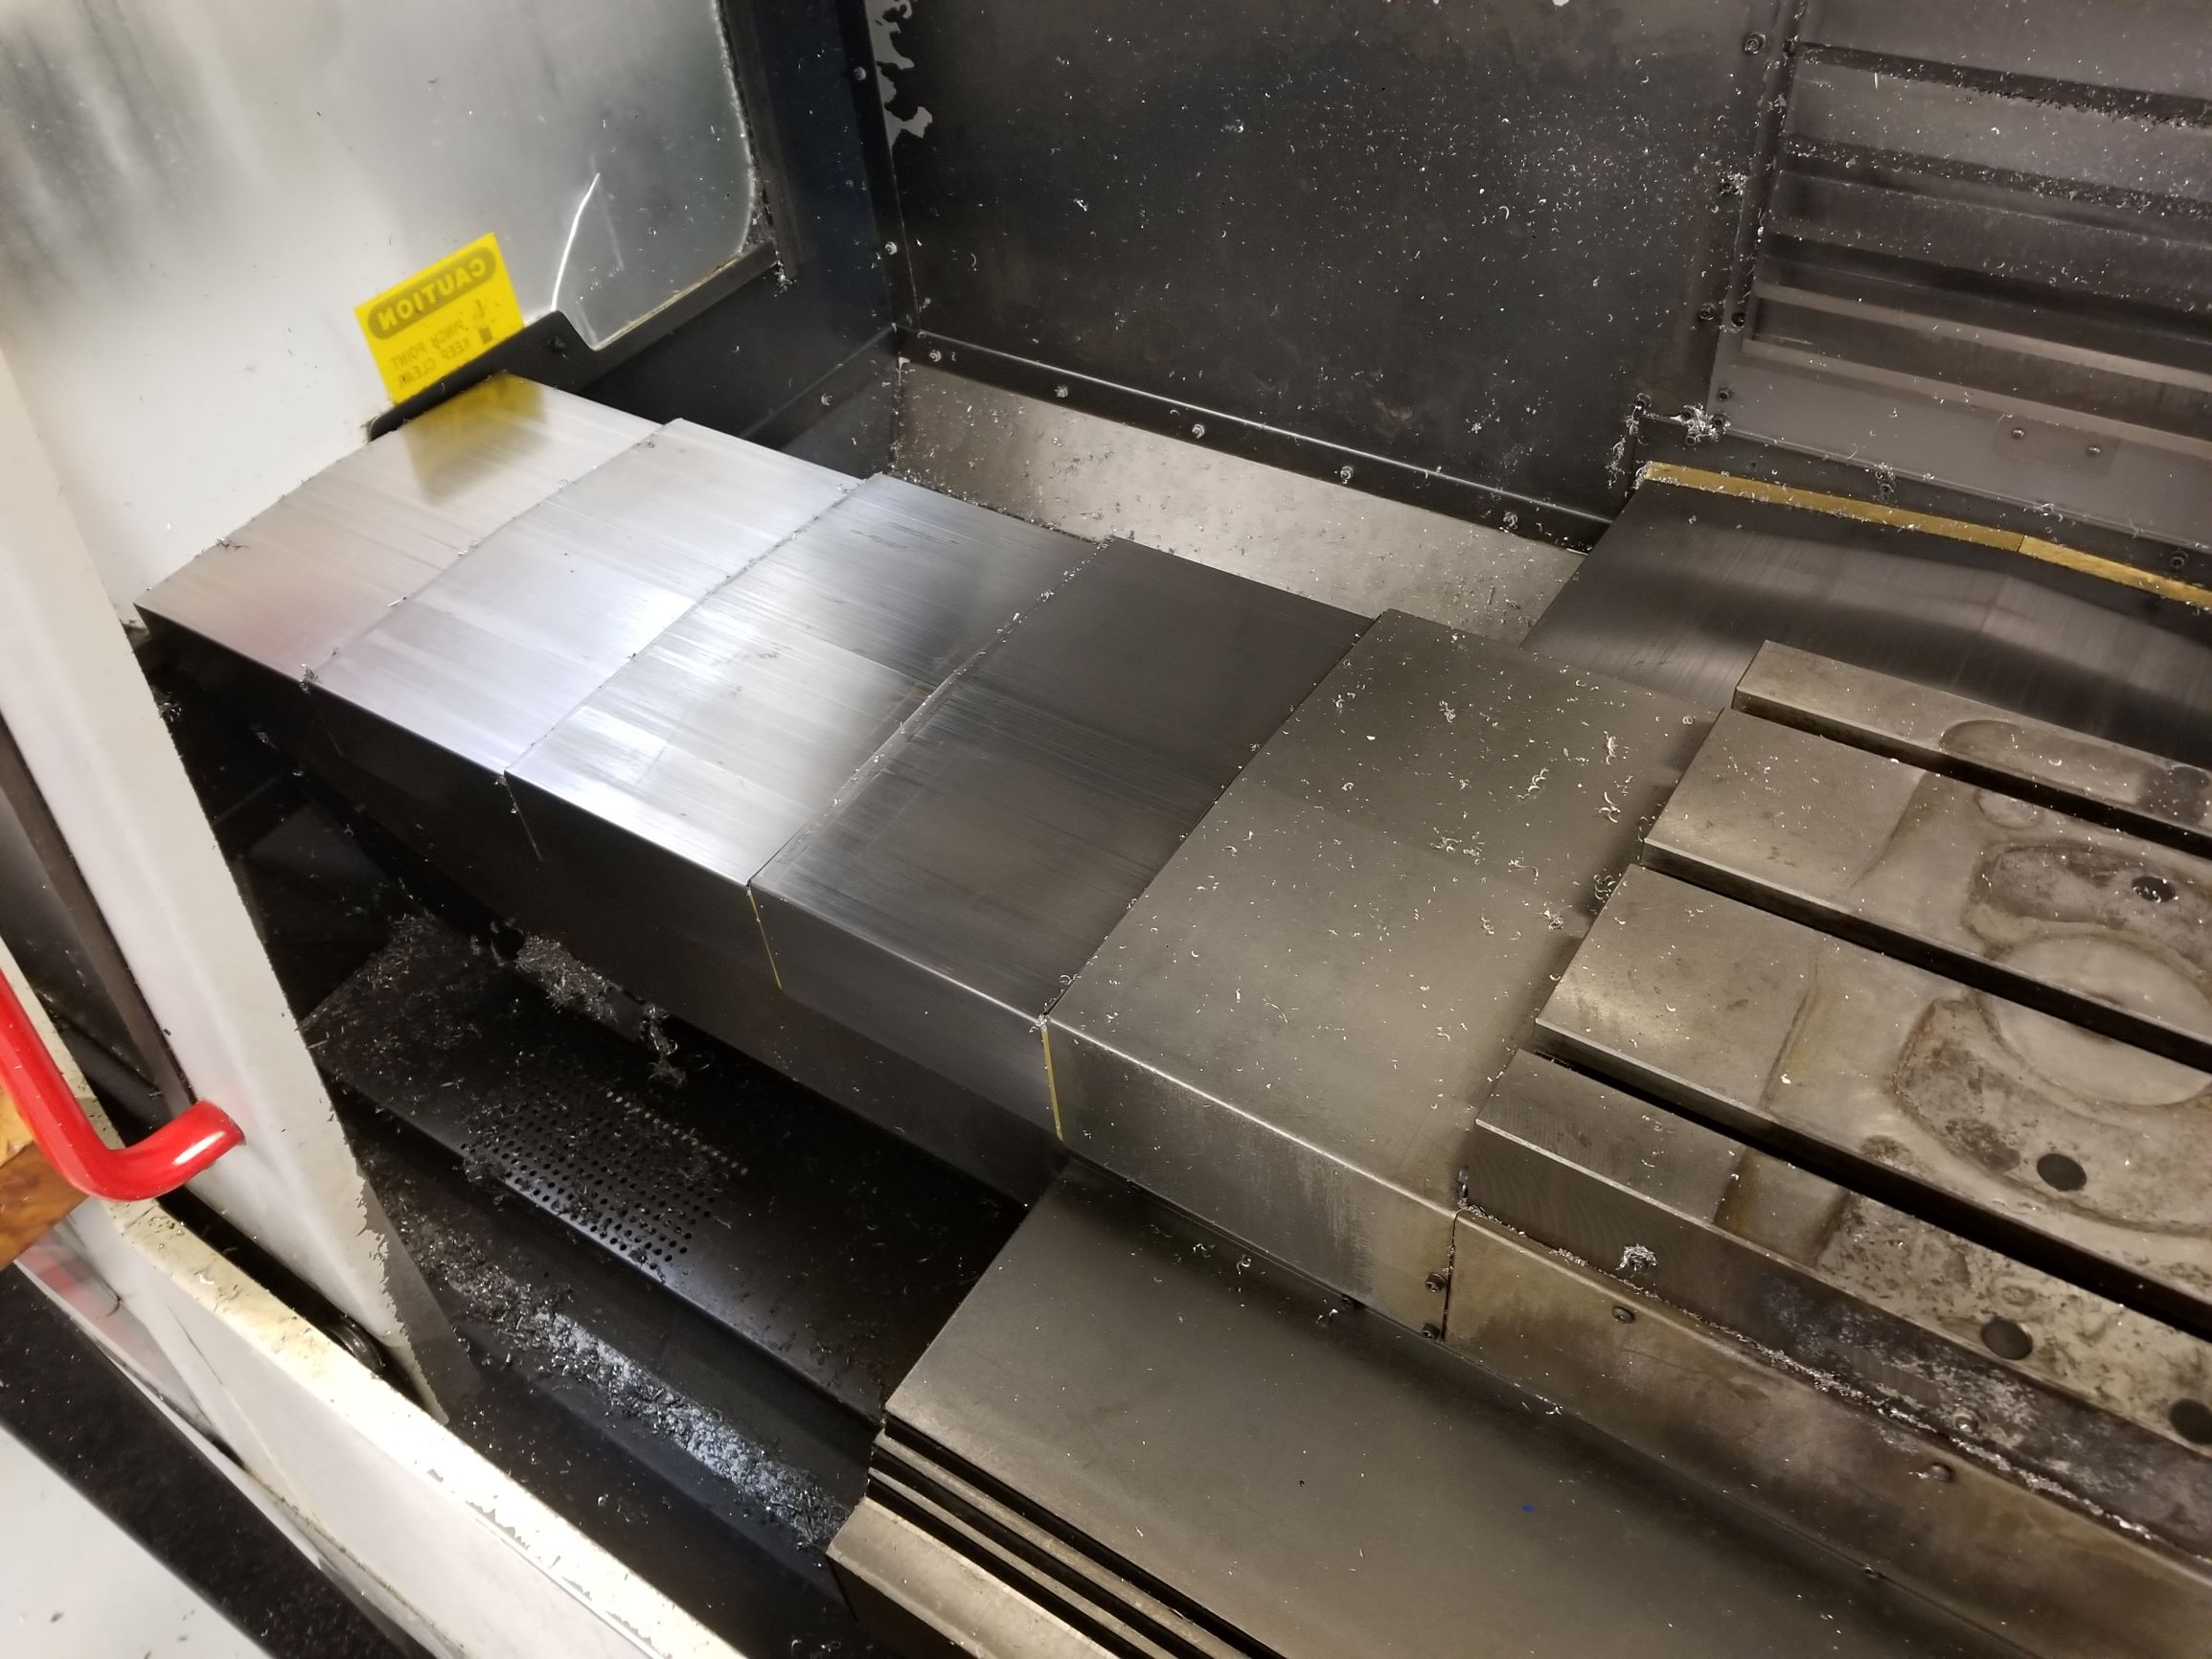 Haas VF-2 CNC Vertical Machining Center with 2-Speed Gearbox Spindle, 20HP Vector Drive, Carousel Tool Changer, and More